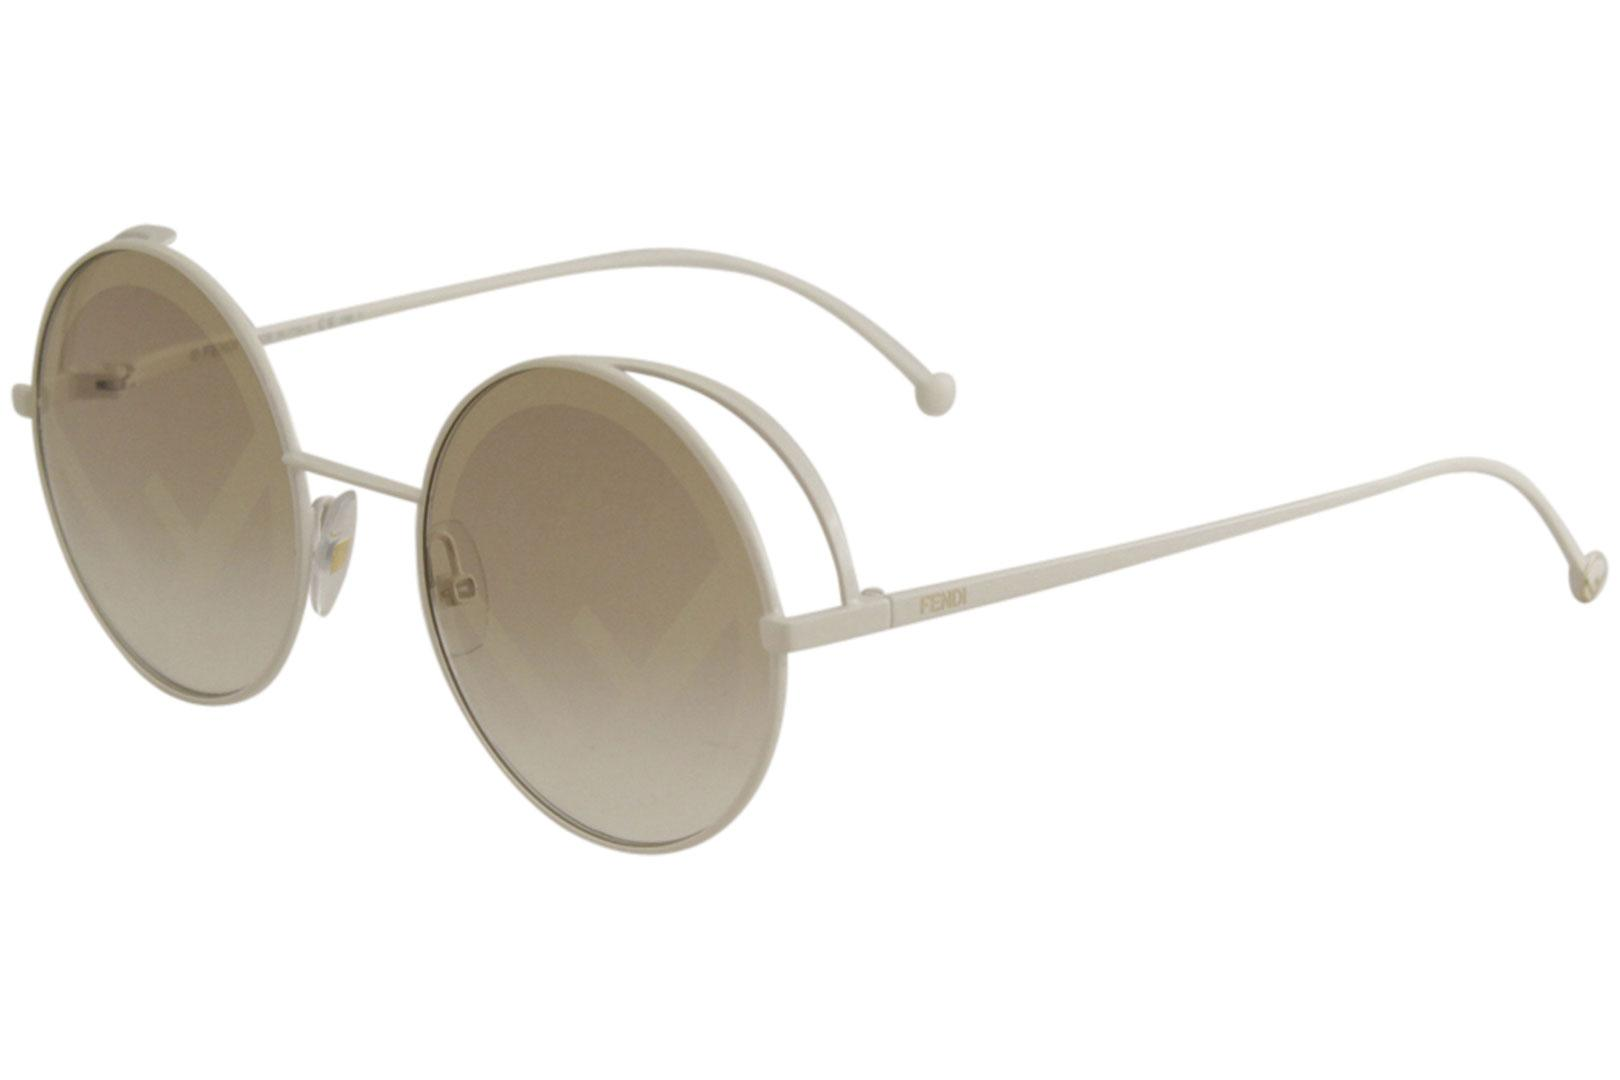 aadc94aa2 Fendi Women's FF0343S FF/0343/S Fashion Round Sunglasses by Fendi. Touch to  zoom